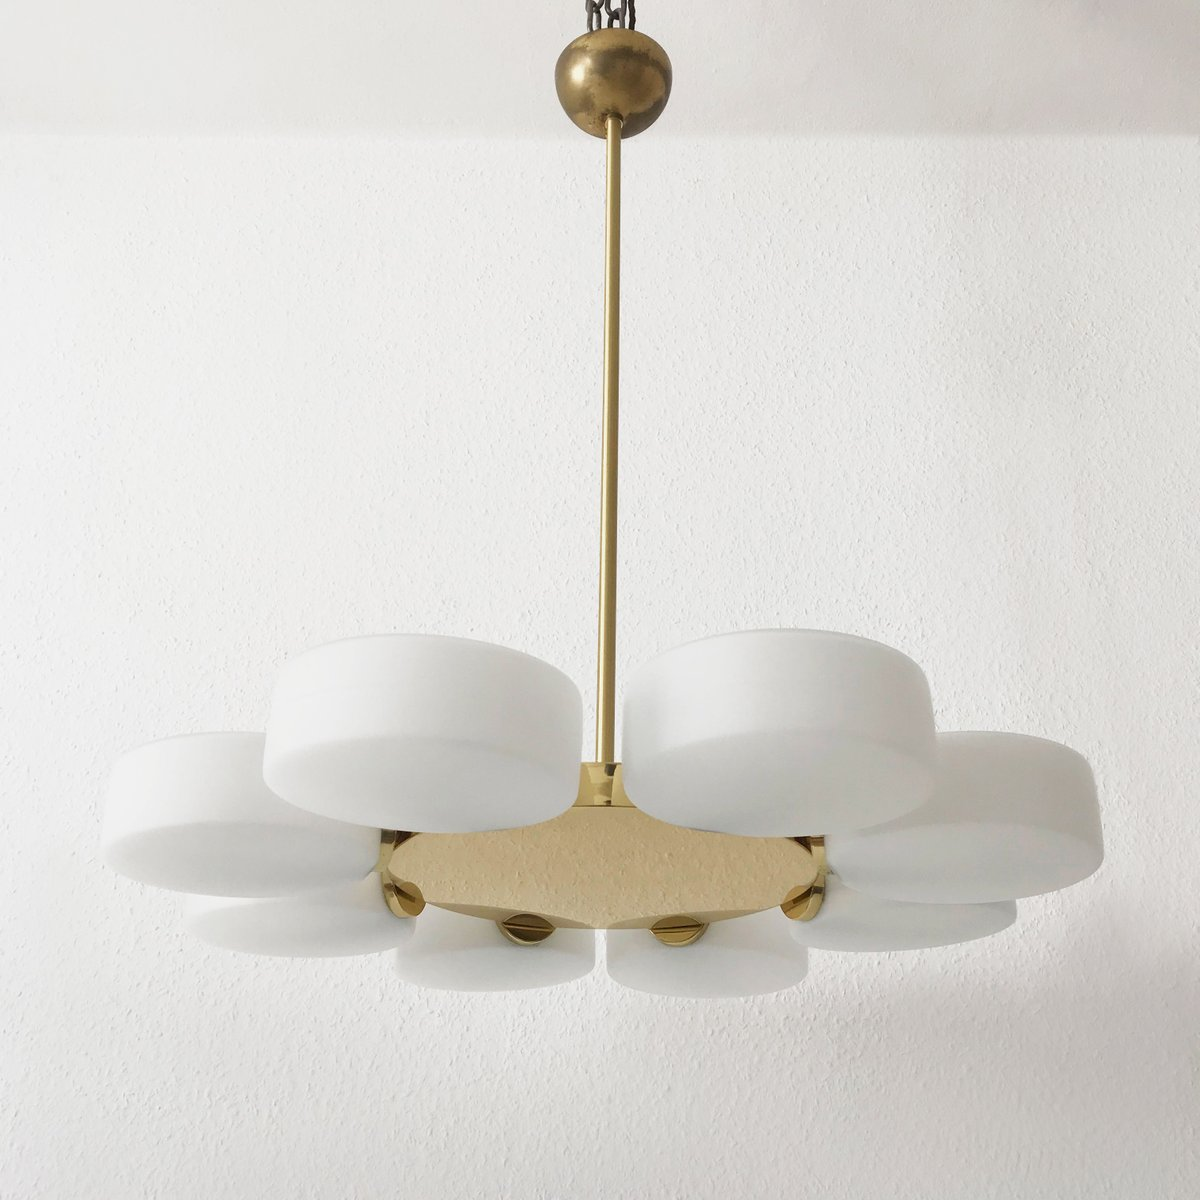 Mid century ceiling lamp from kaiser leuchten for sale at pamono mid century ceiling lamp from kaiser leuchten mozeypictures Choice Image